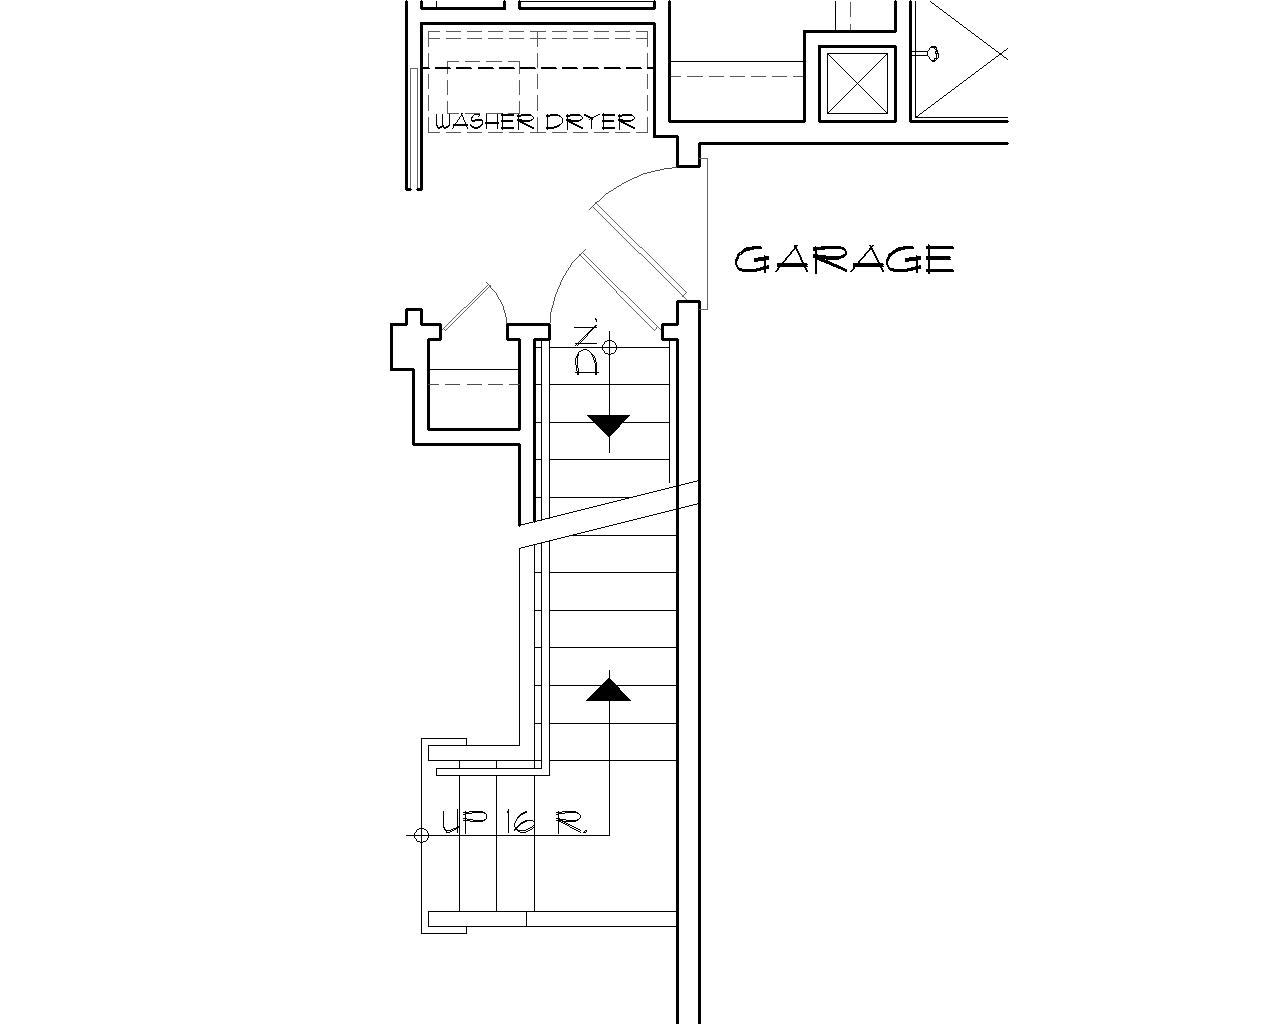 Basement Stair Location image of Griswold House Plan